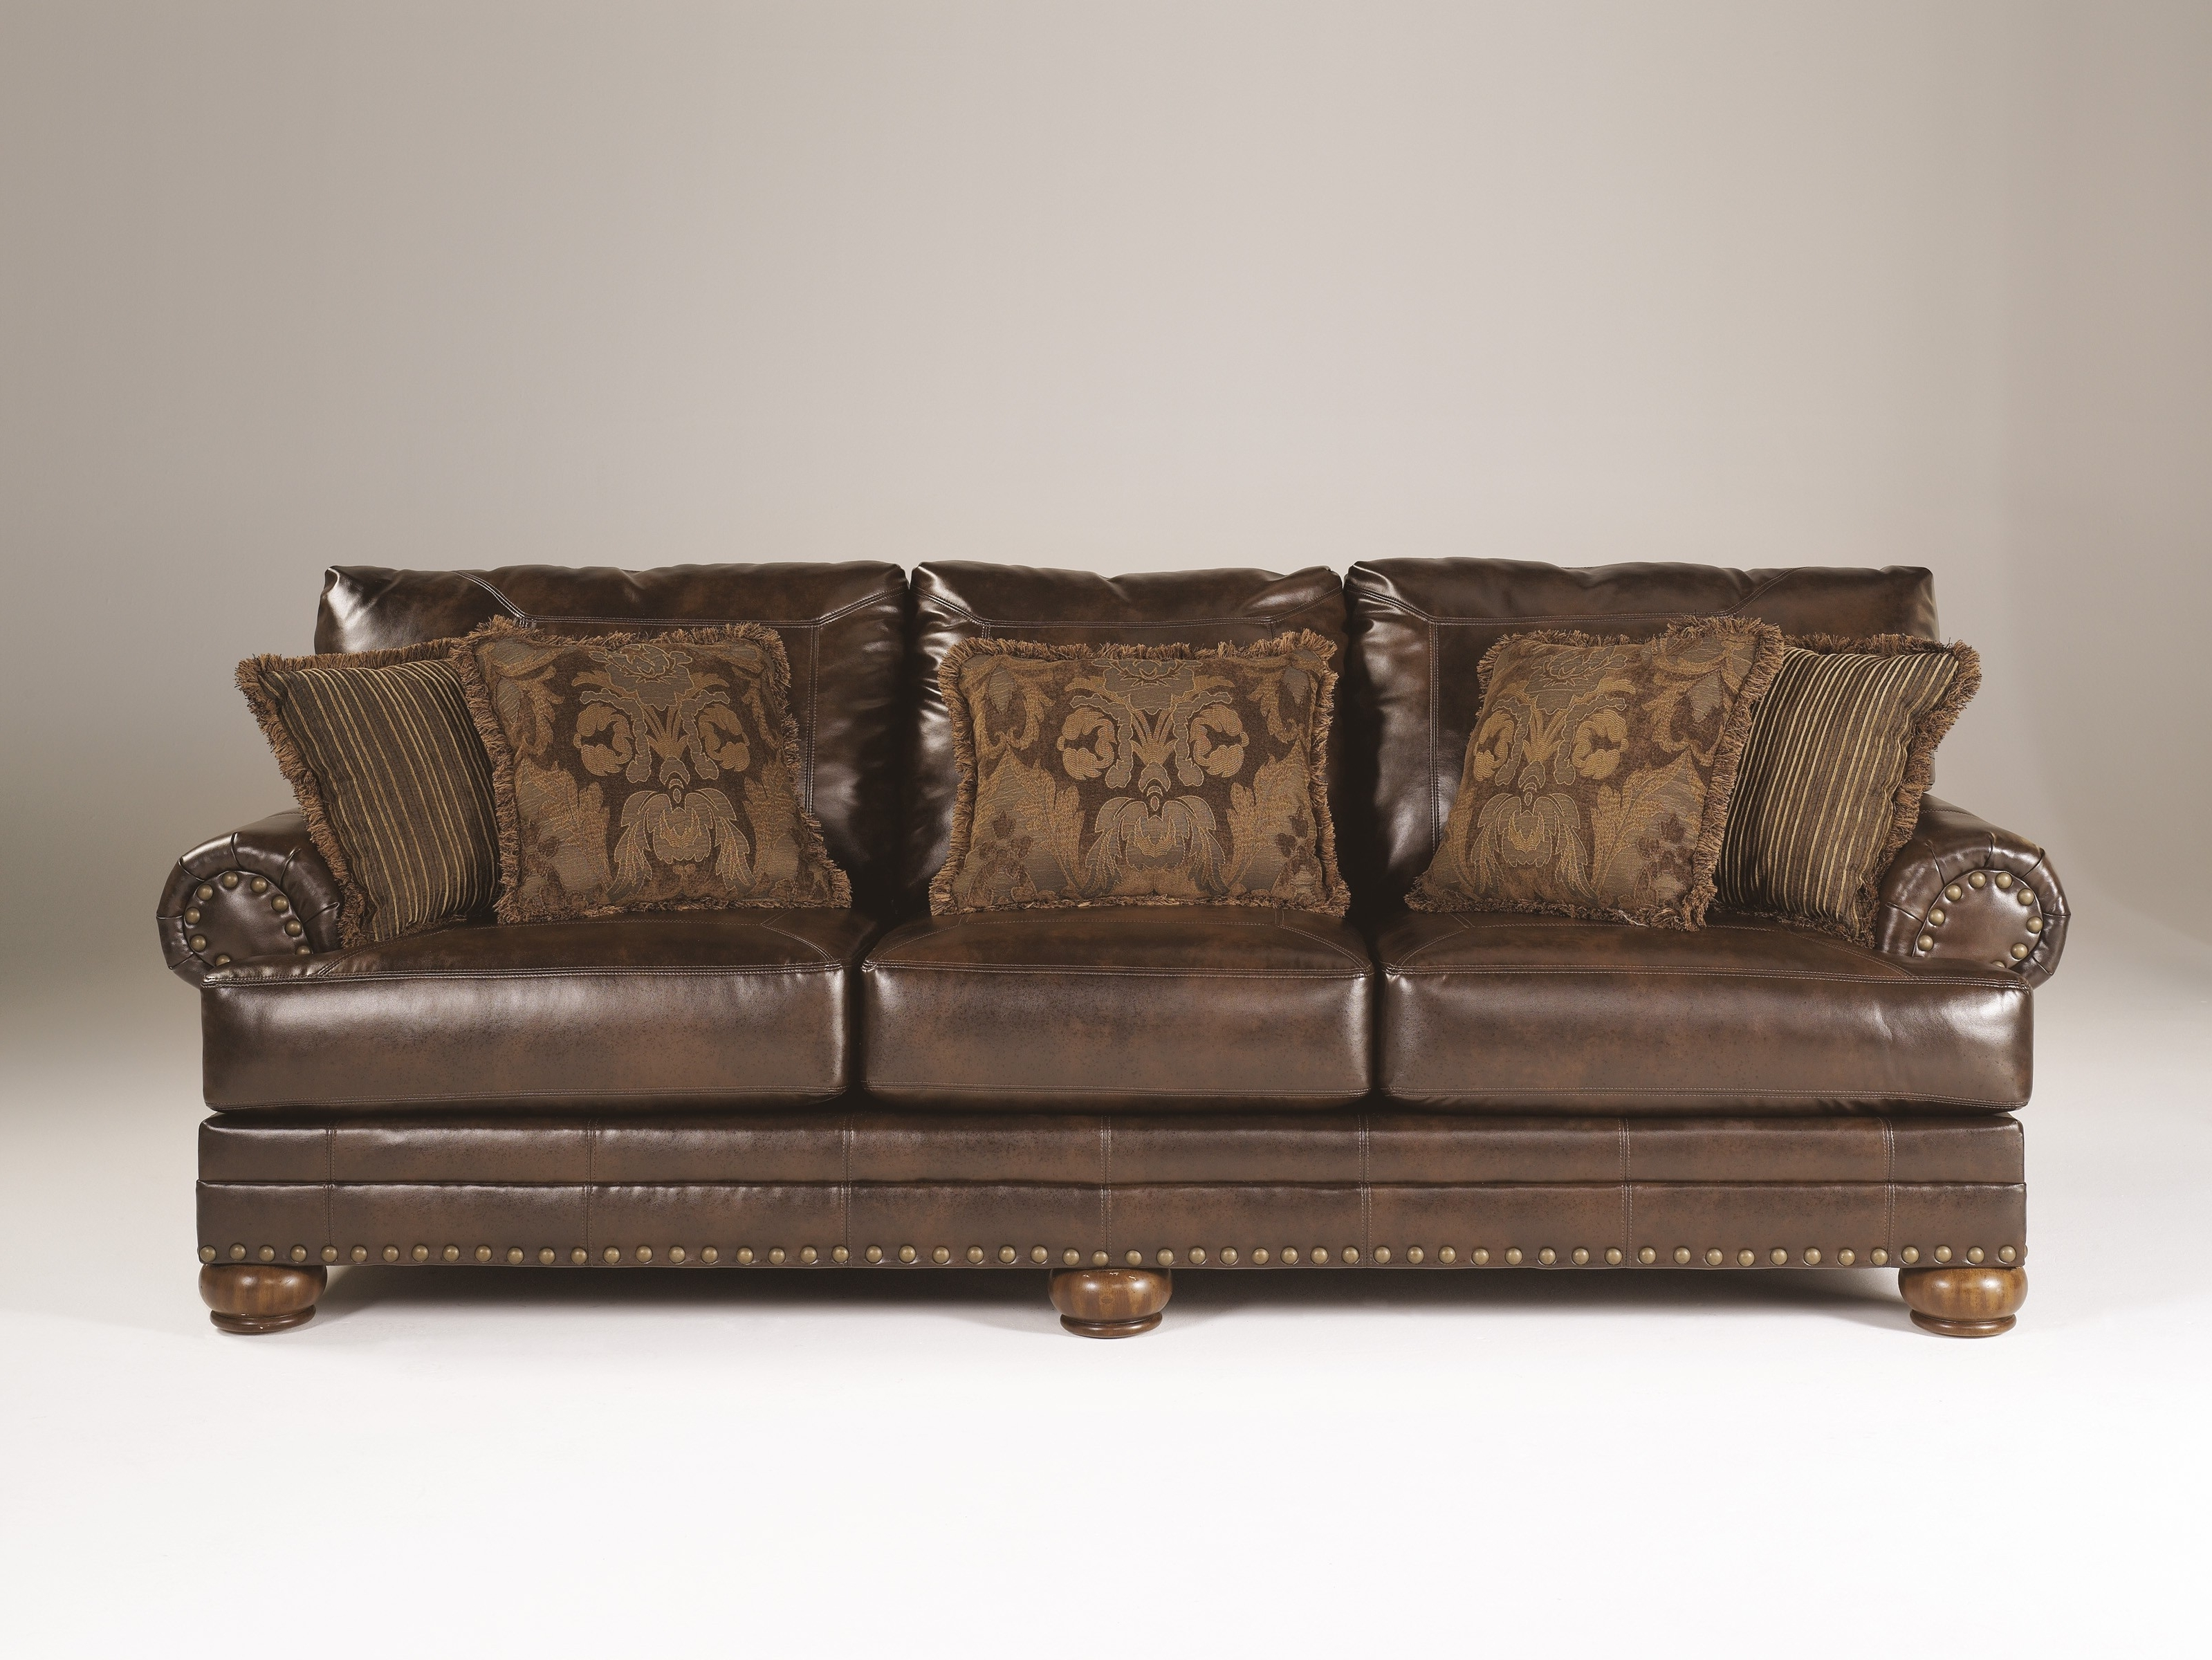 Ashley Brown Leather Durablend Antique Sofaashley Furniture Inside 2018 Antique Sofas (View 7 of 20)